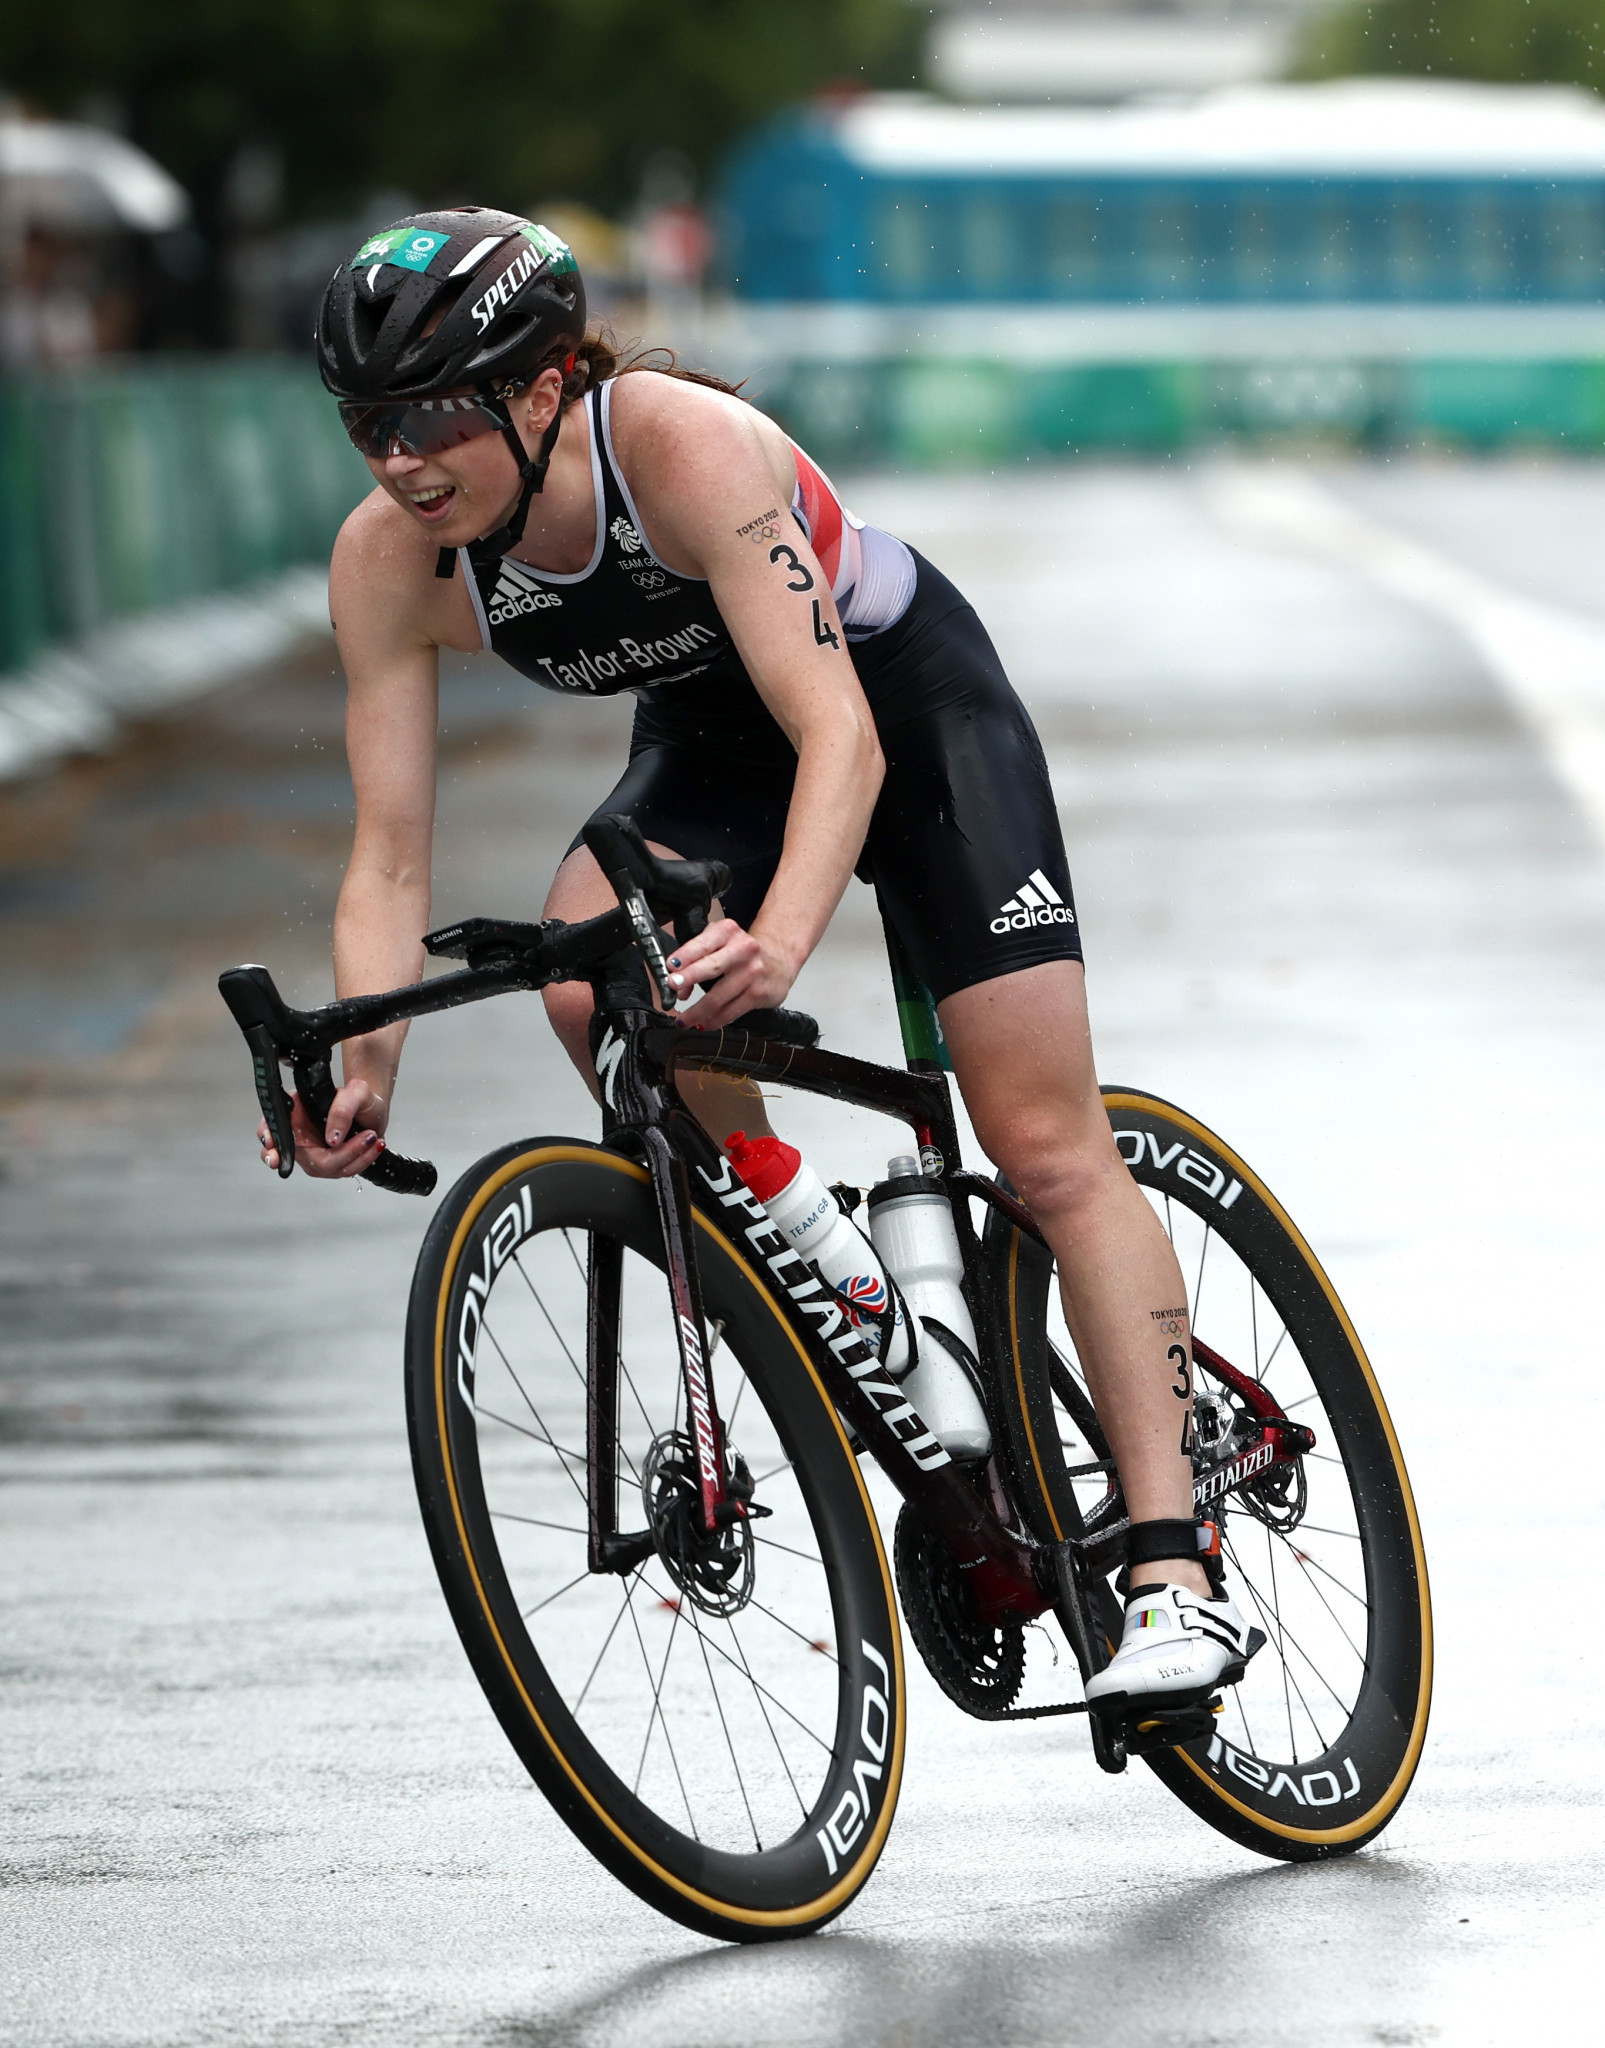 Britain's Georgia Taylor-Brown lost valuable time at the end of the cycle leg after suffering a late puncture but produced an astonishing recovery on the run to take the silver medal ©Getty Images